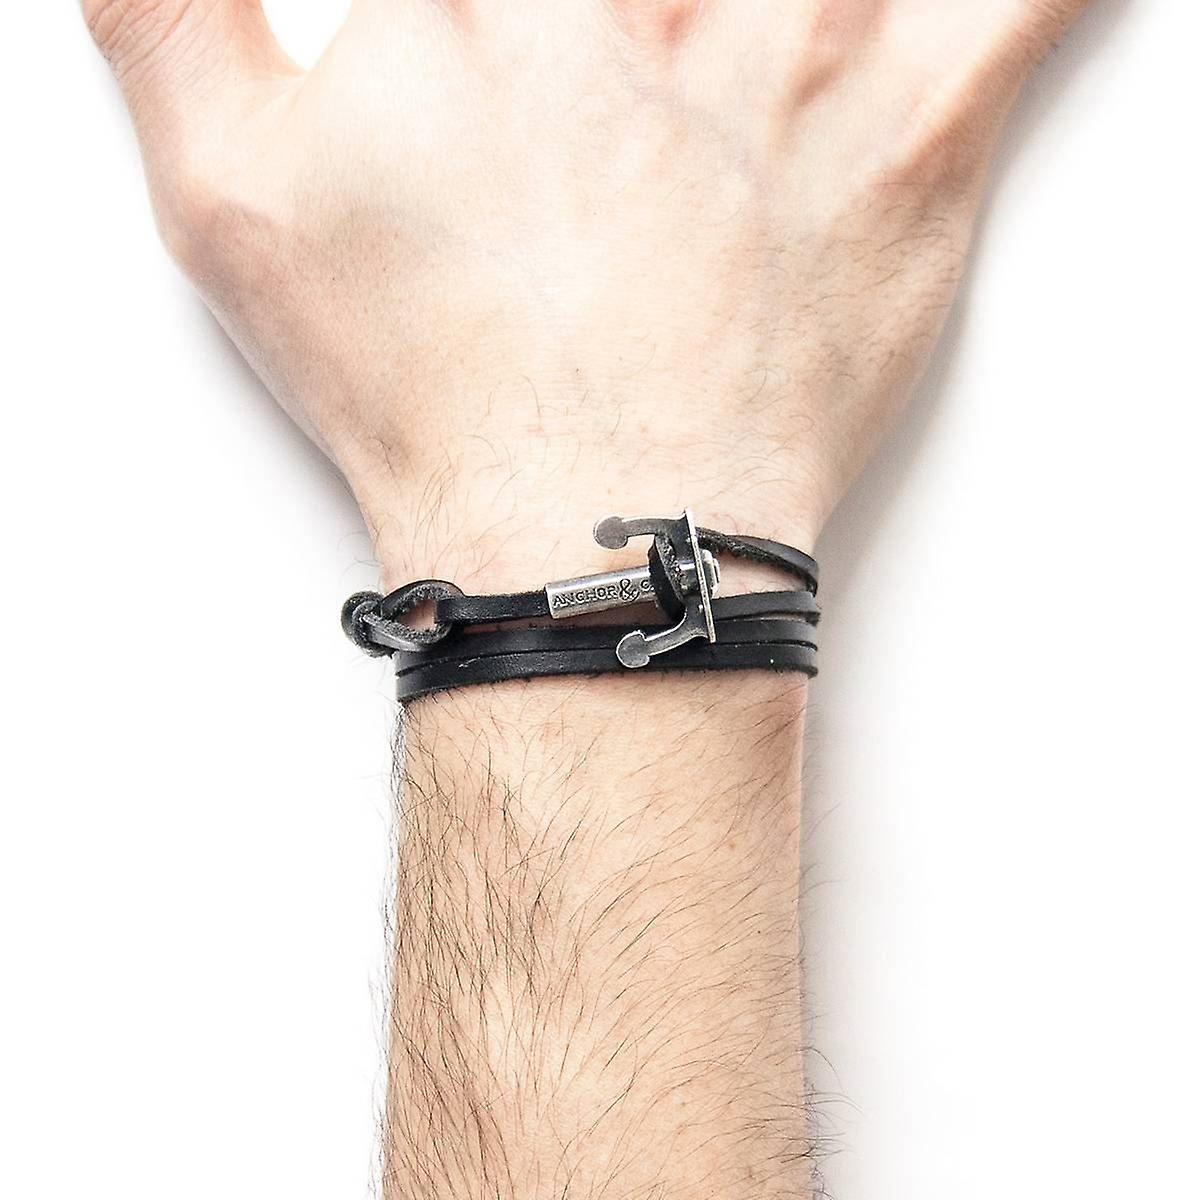 Anchor and Crew Union Silver and Leather Bracelet - Coal Black